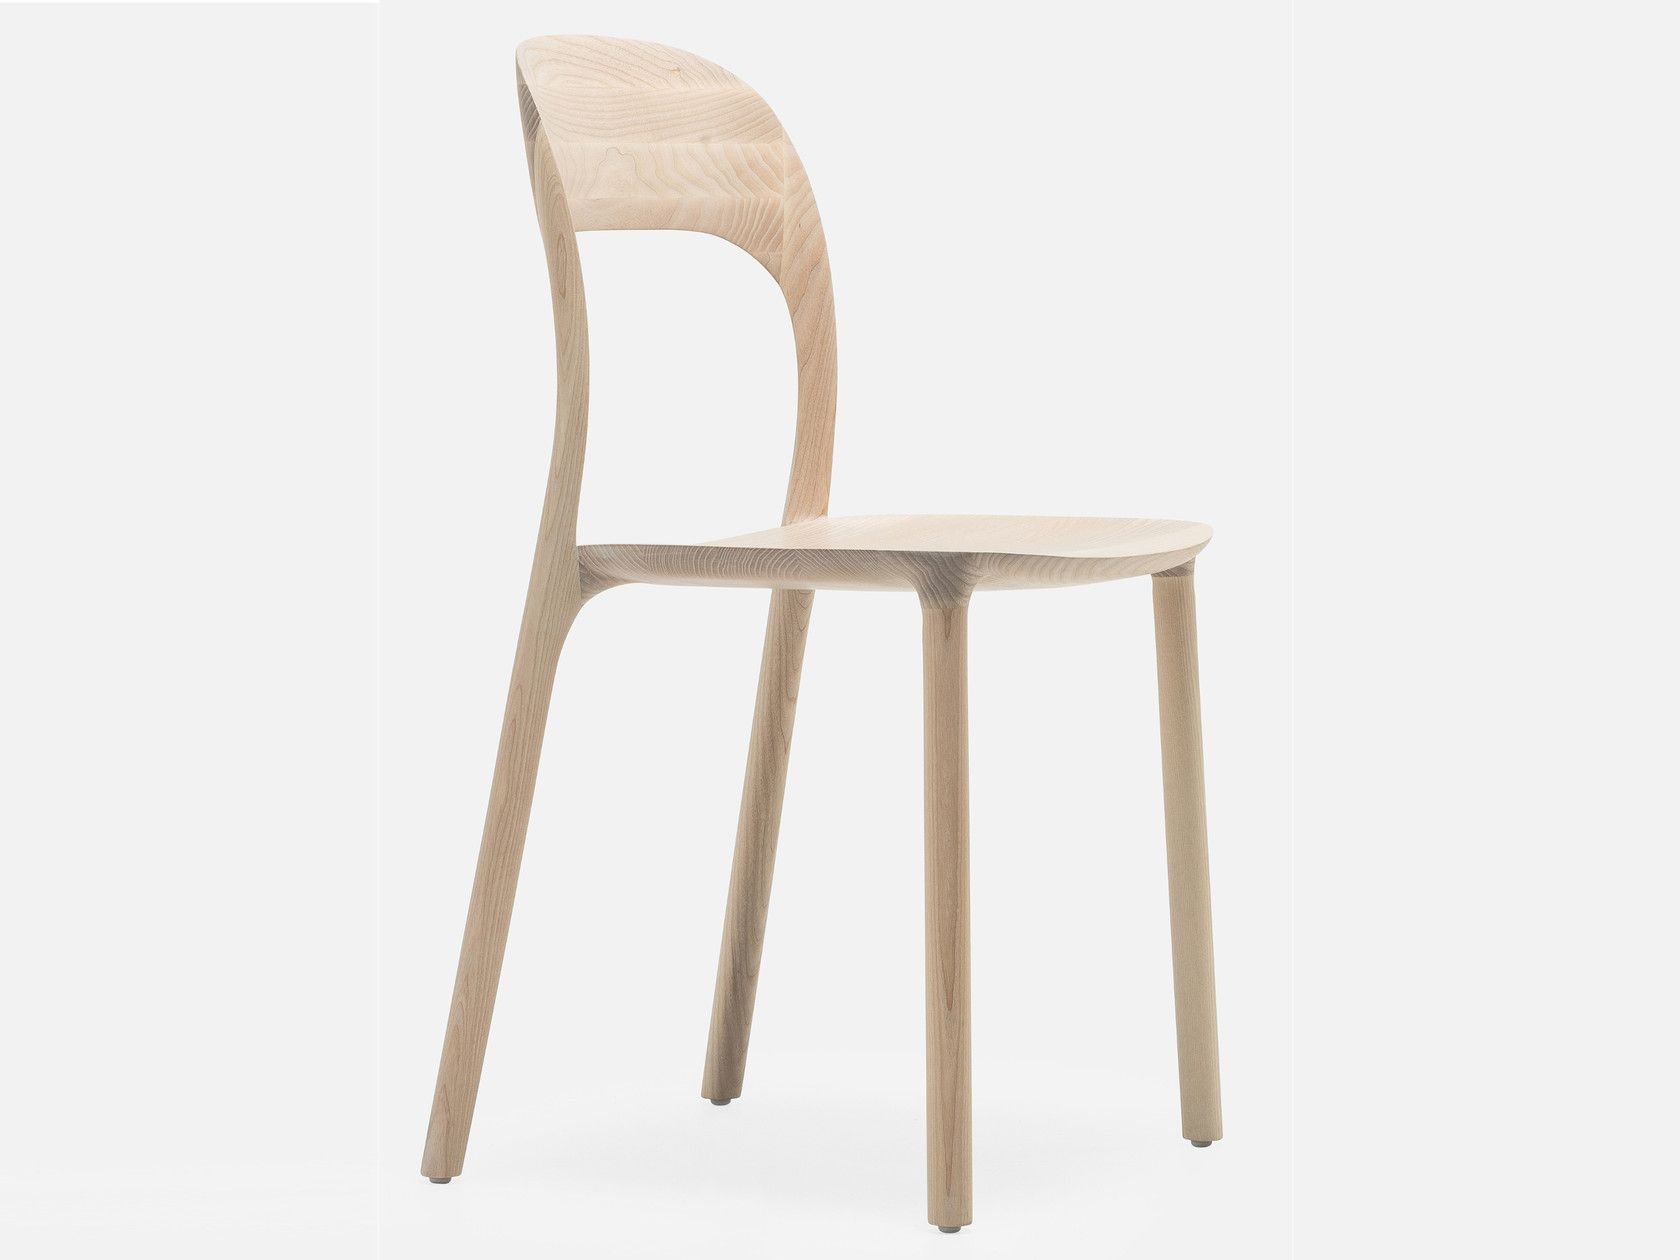 Elle Solid Wood Chair Elle Collection By Ms Wood Design Natasa Perkovic Chaise Bois Design Chaise Salle A Manger Bois Concept